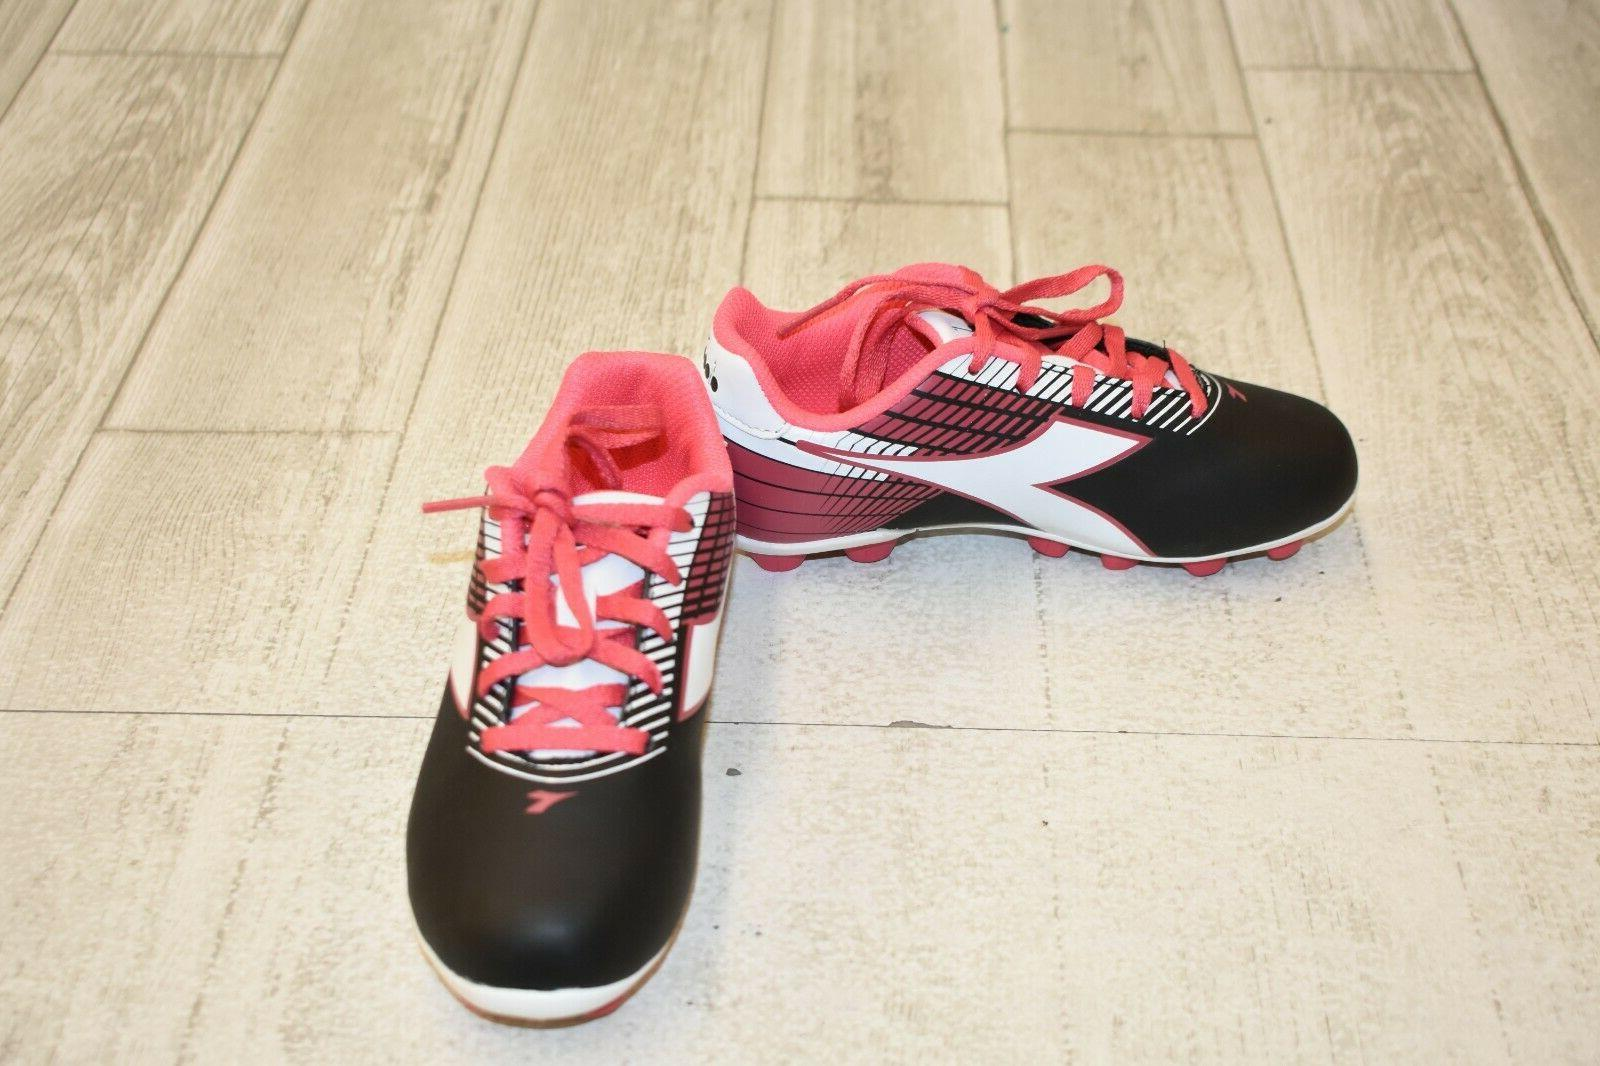 fa5371bc **Diadora Kids Ladro MD JR Soccer Cleats, Little Girl's Size 13, Black/Pink  NEW